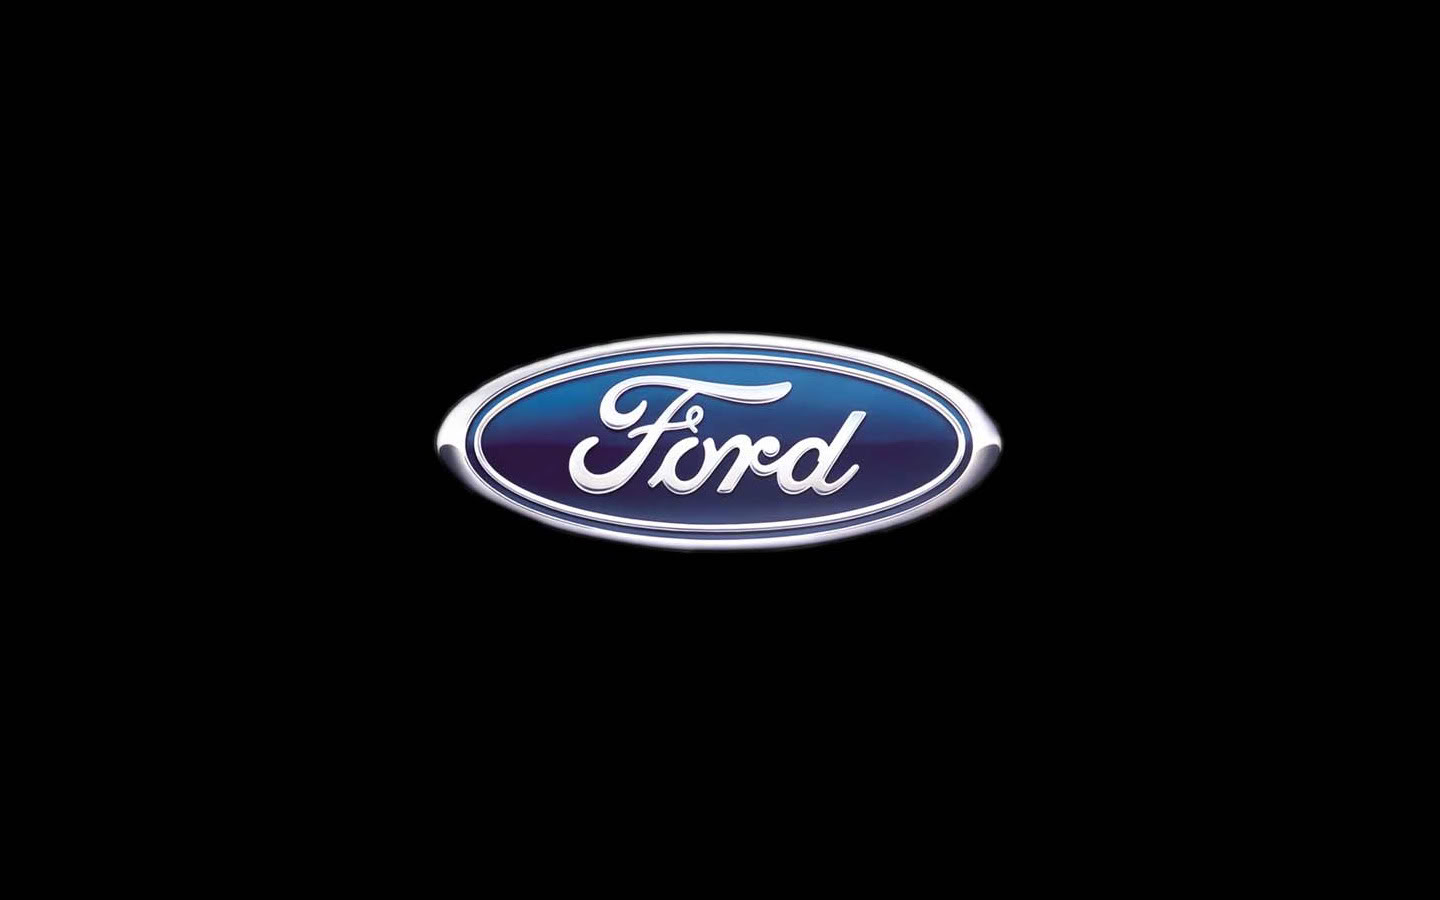 Cool Ford Logo Wallpapers 1440x900